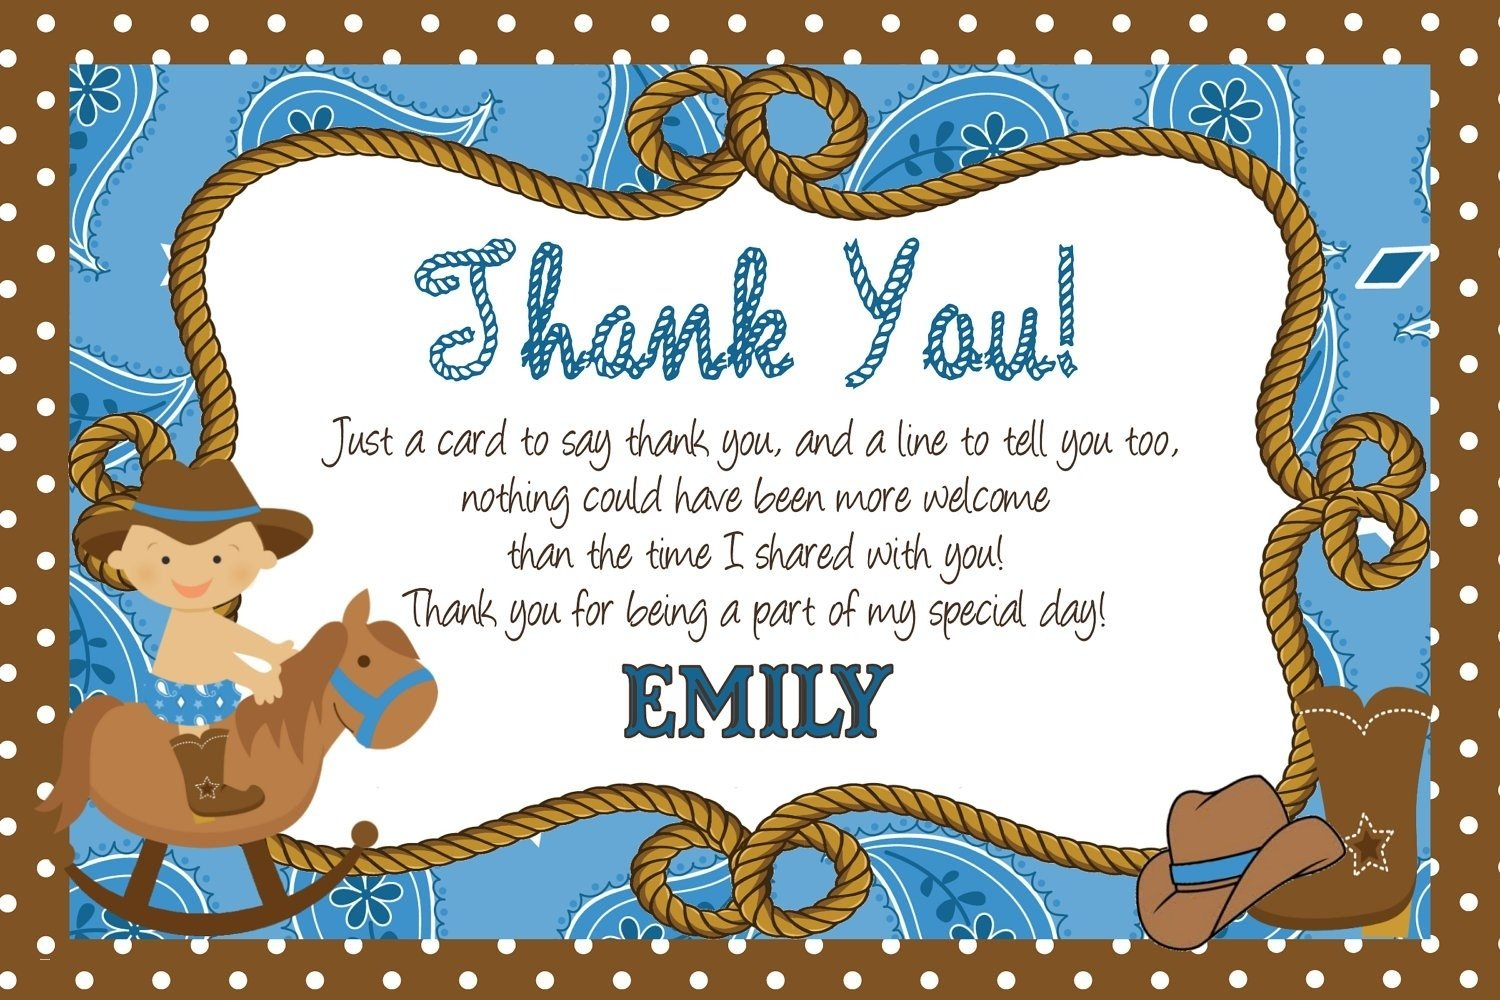 10 Fashionable Thank You Card Message Ideas baby thank you card wording ideas arteygrafia arteygrafia